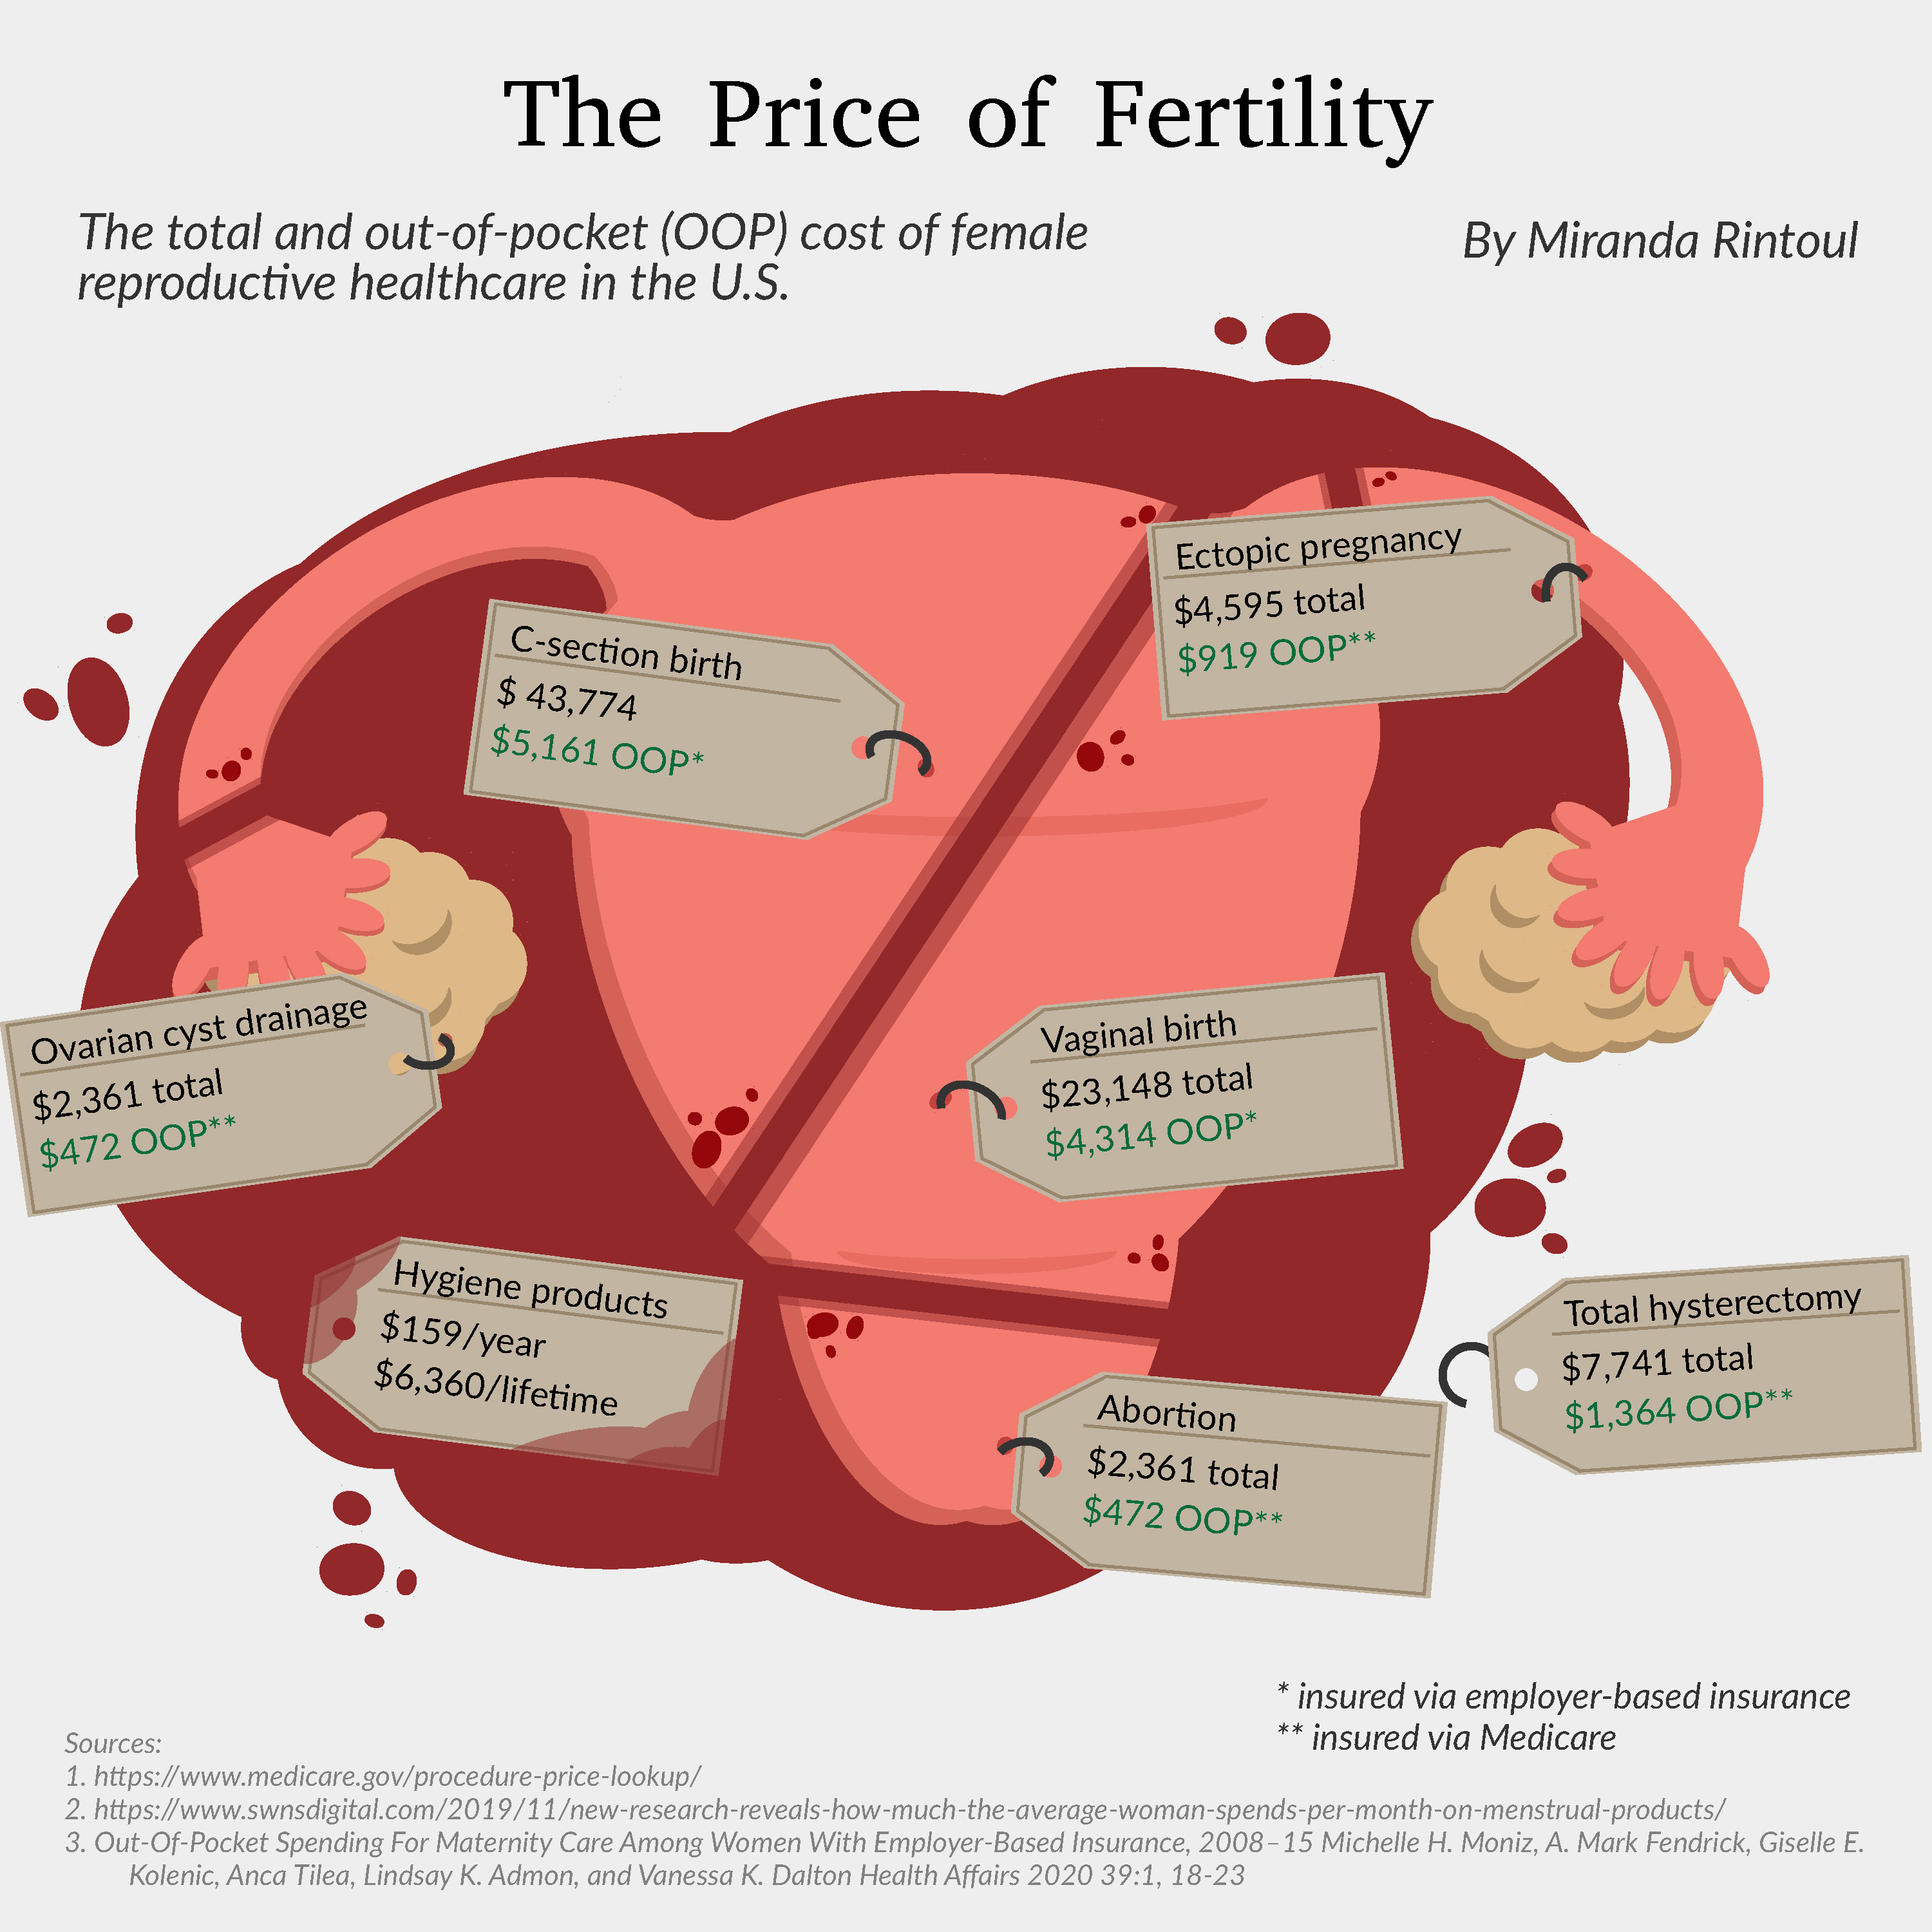 The Price of Fertility visualization